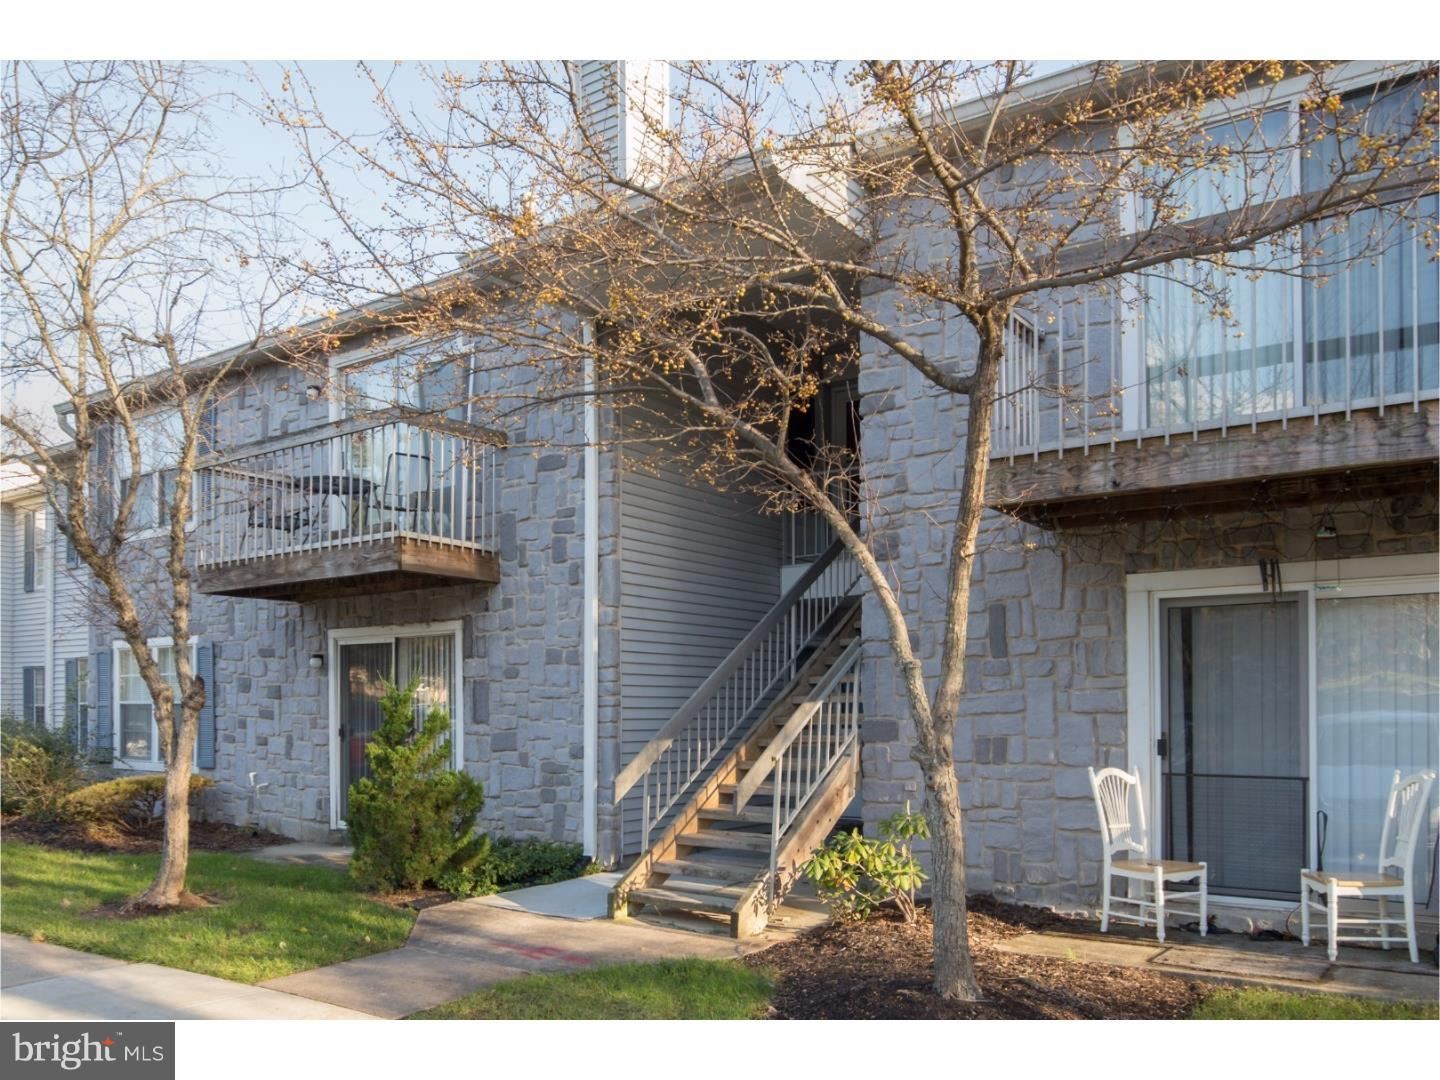 Property for Rent at Lawrenceville, New Jersey 08648 United States